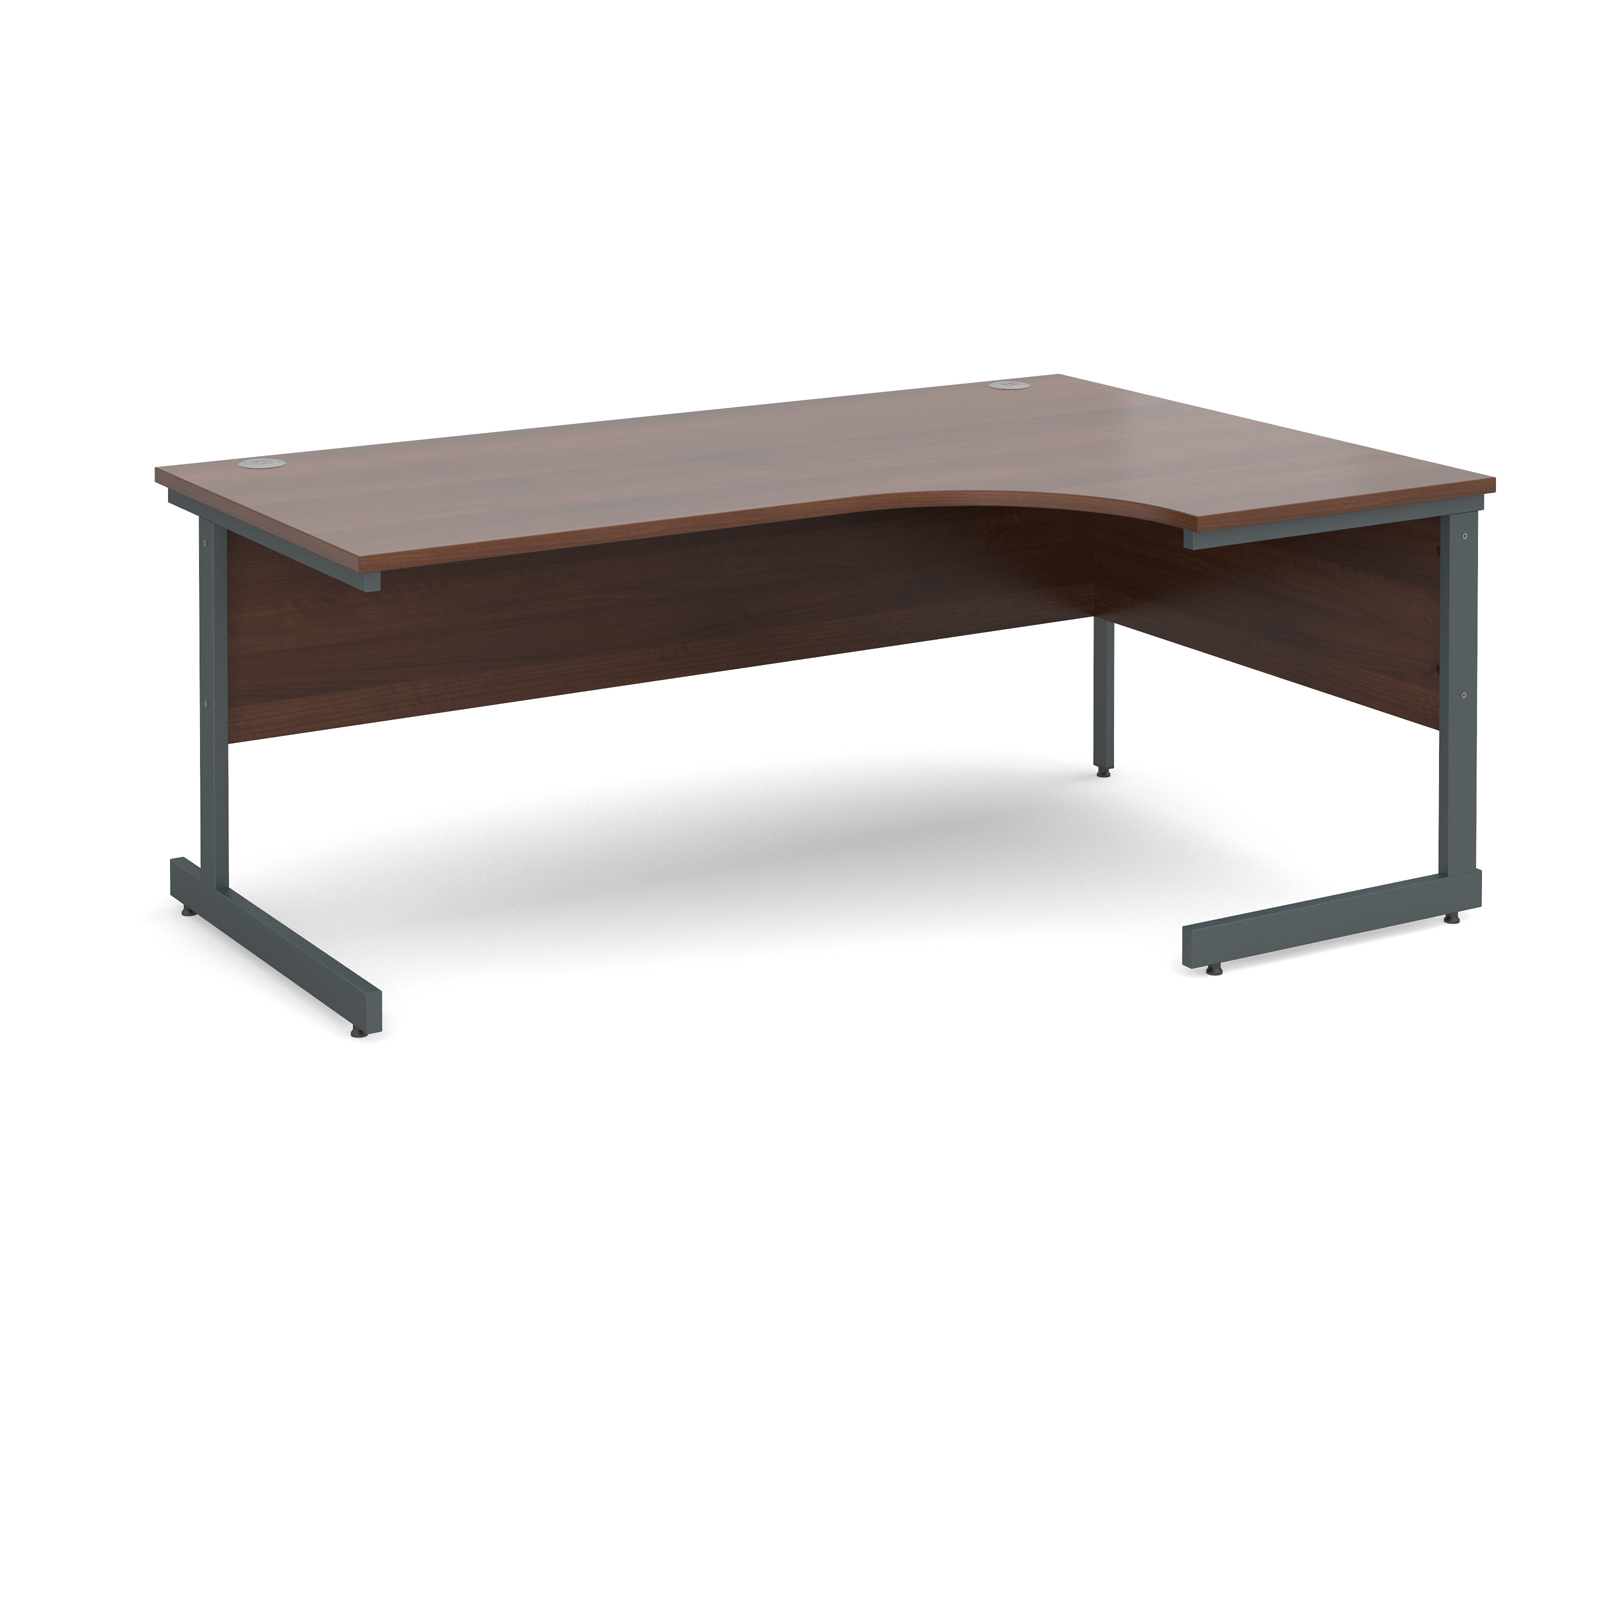 Contract 25 right hand ergonomic desk 1800mm - graphite cantilever frame, walnut top